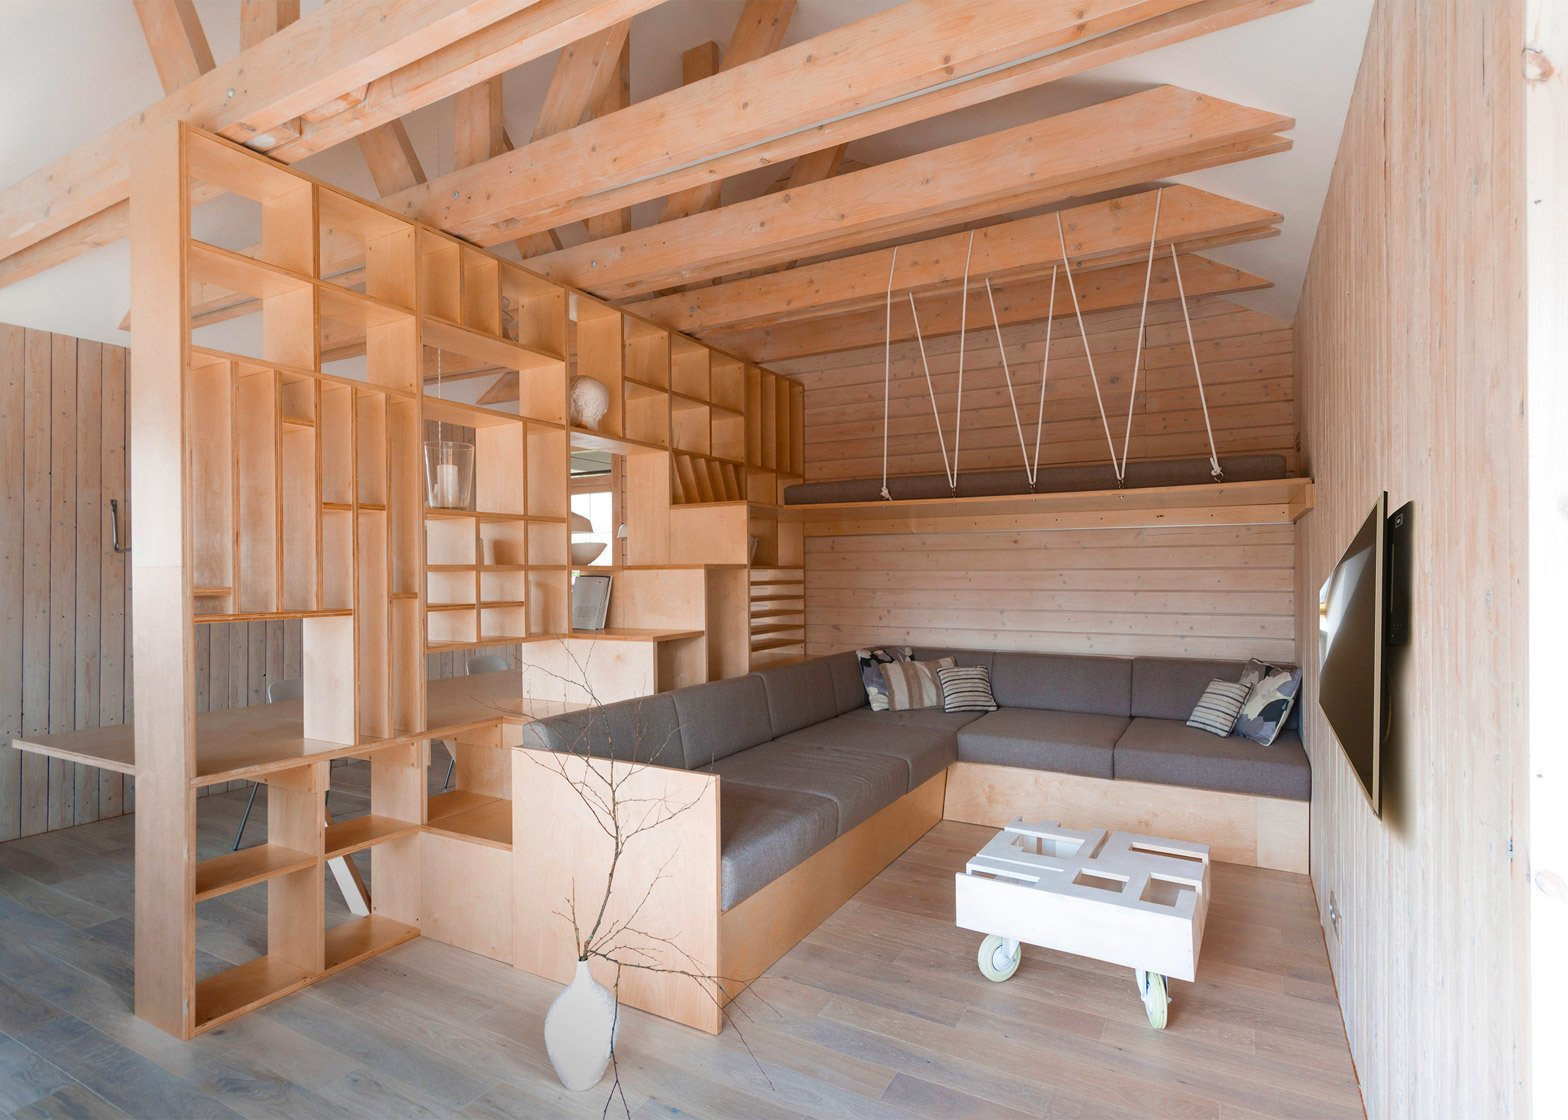 Russian-based studio Ruetemple conjured a plywood partition that  separates working and relaxation areas inside this artist's studio in Moscow, incorporating both furniture and shelves for tidying away art supplies. Tagged: Living Room.  Photo 7 of 11 in 10 Space-Saving Interiors For Multifunctional Living from Space-saving Interiors